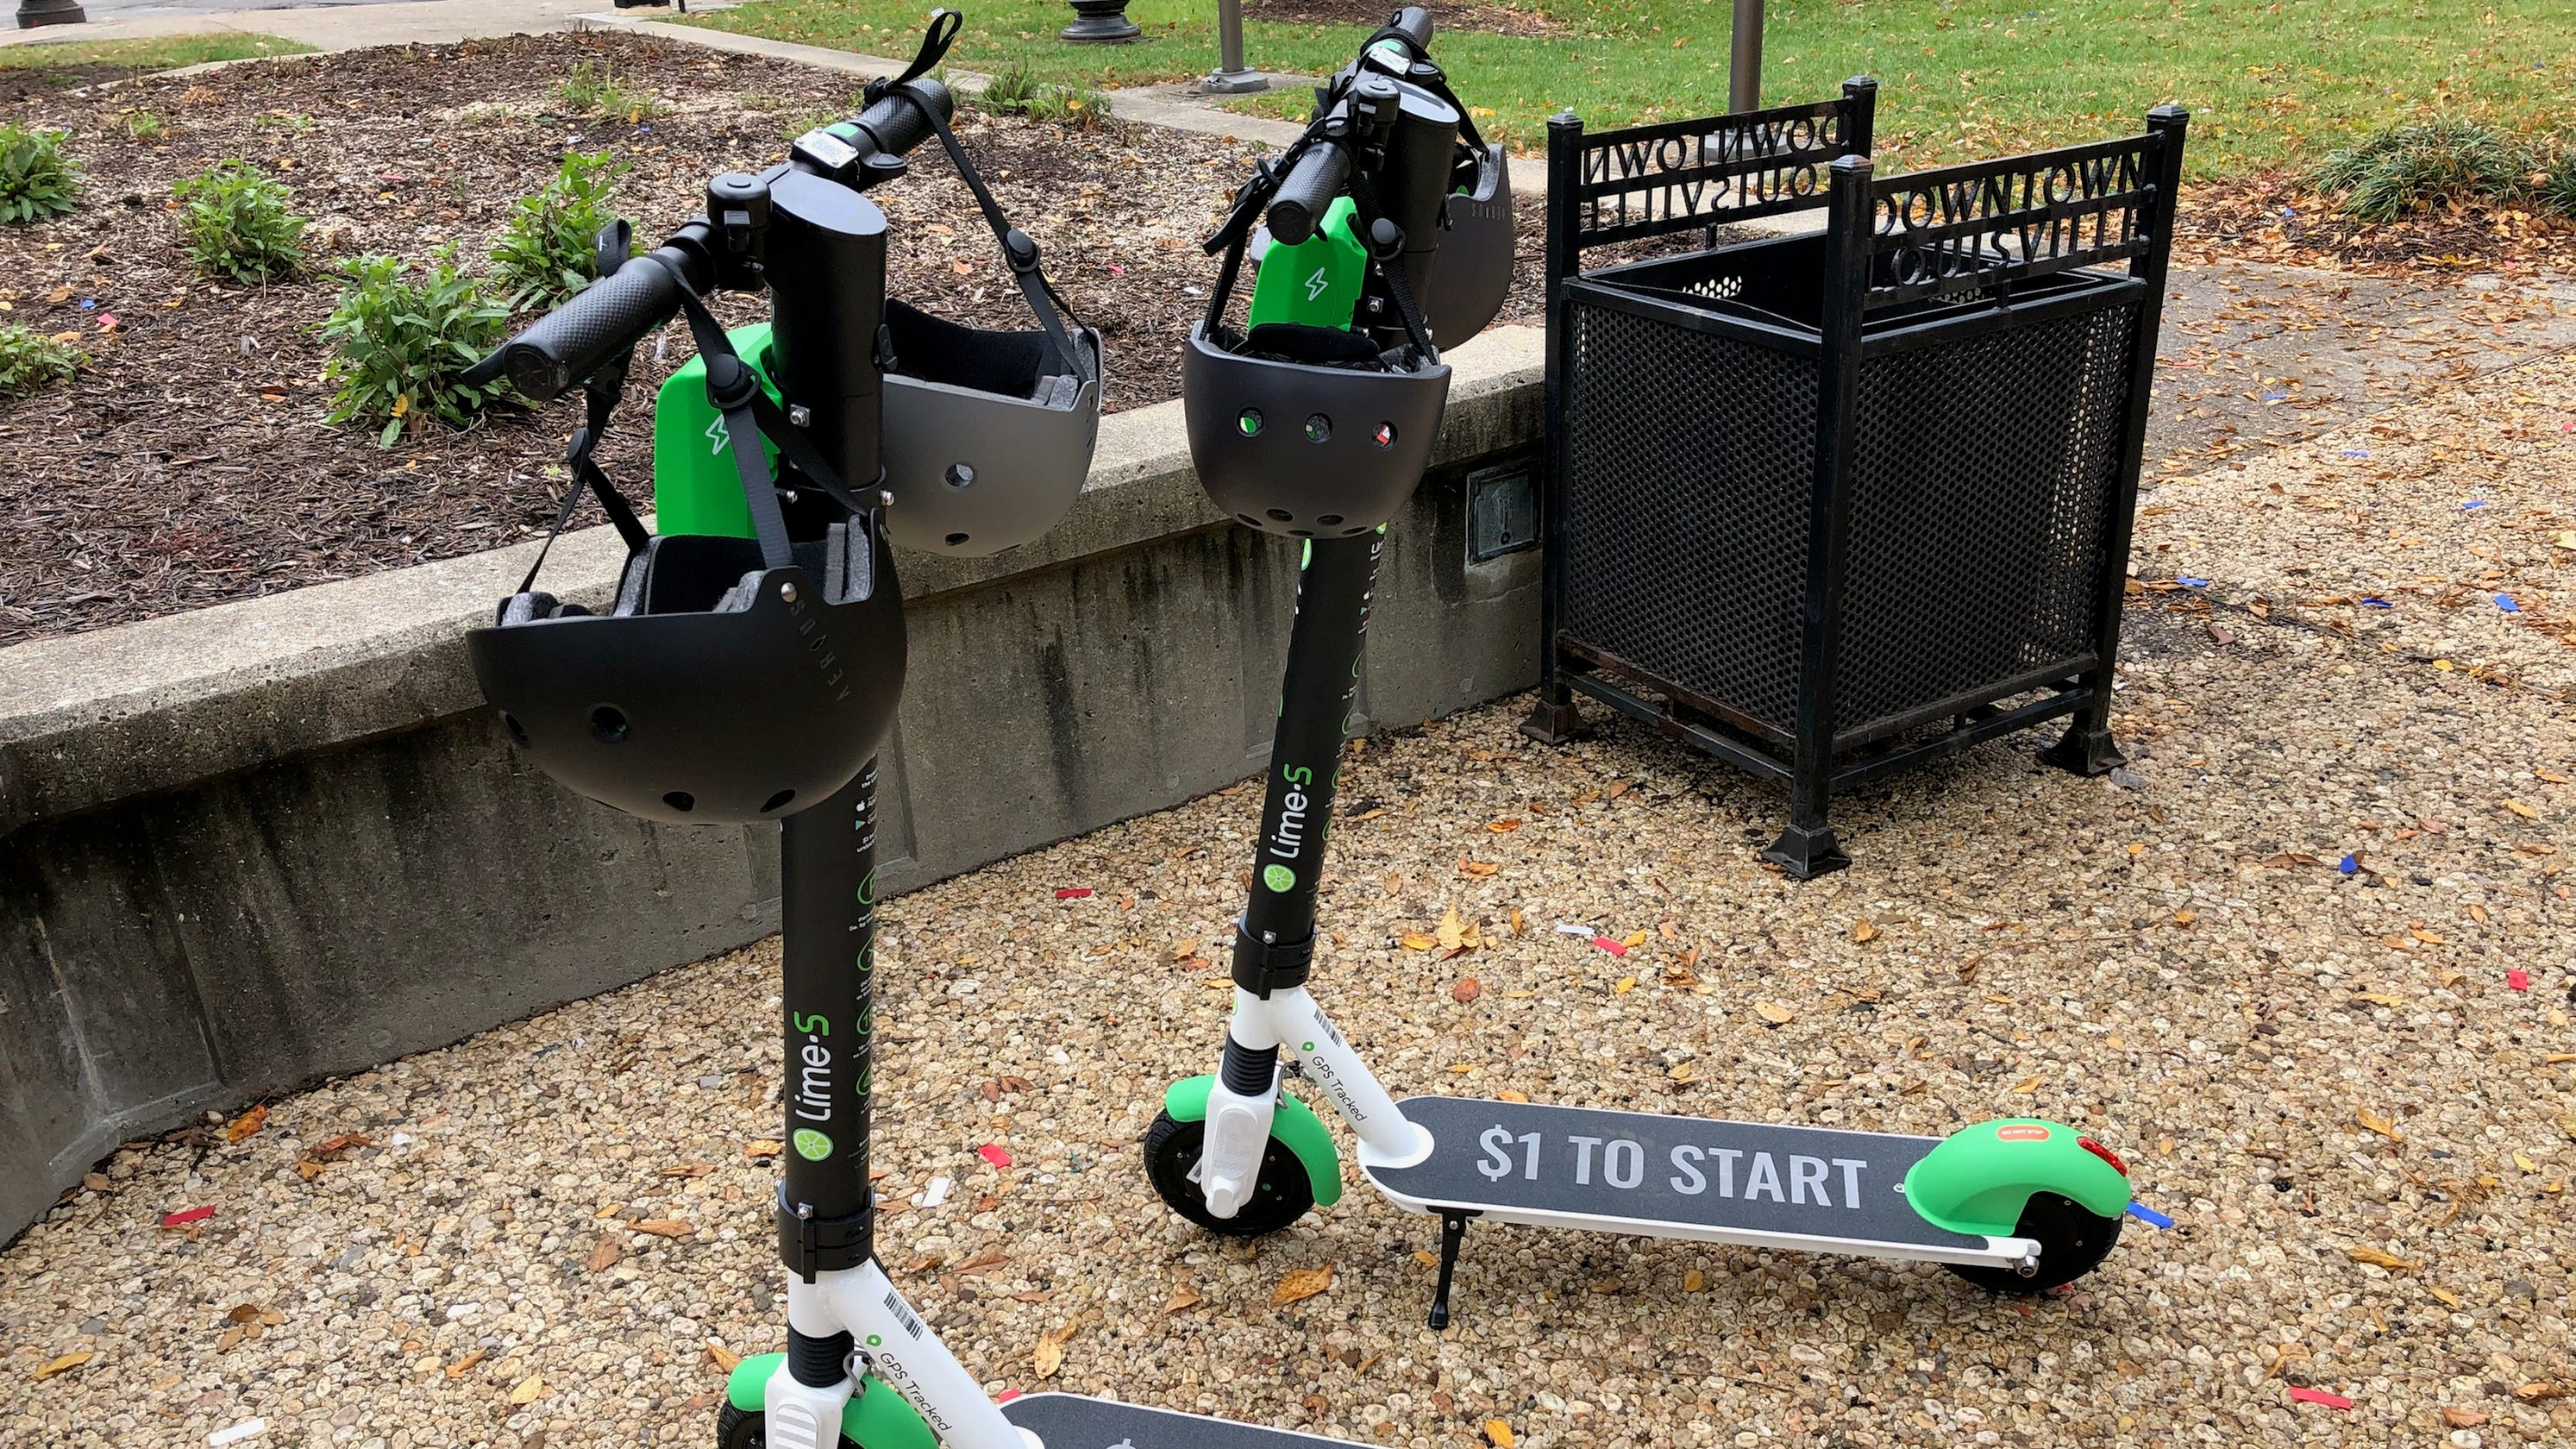 Louisville Bird, Lime may be joined by 5 dockless scooters — like Lyft